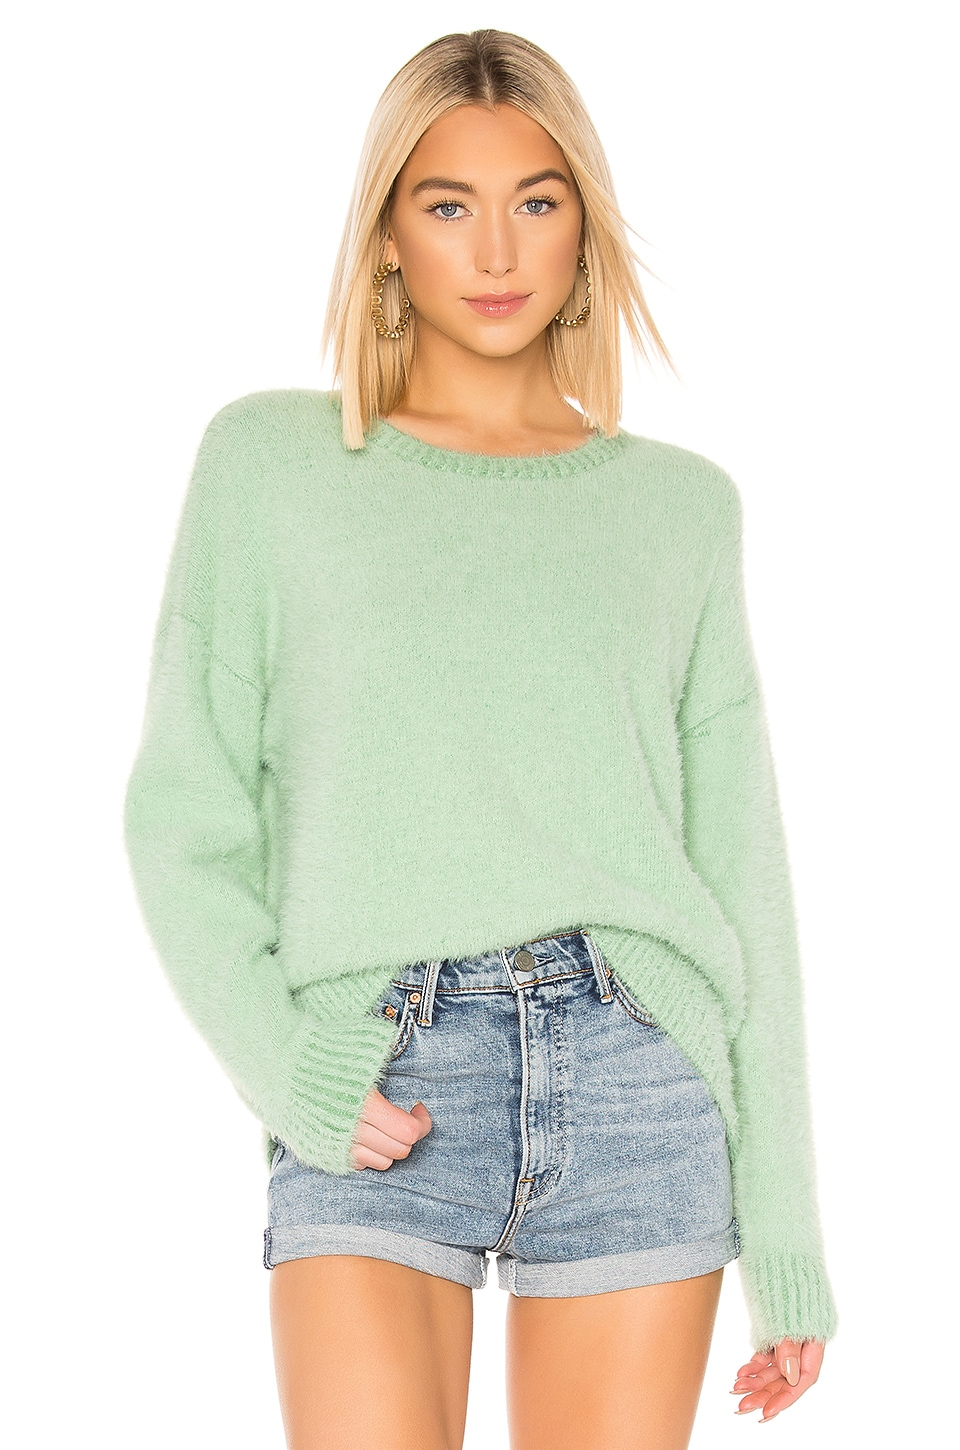 Central Park West Shangri La Sweater in Mint